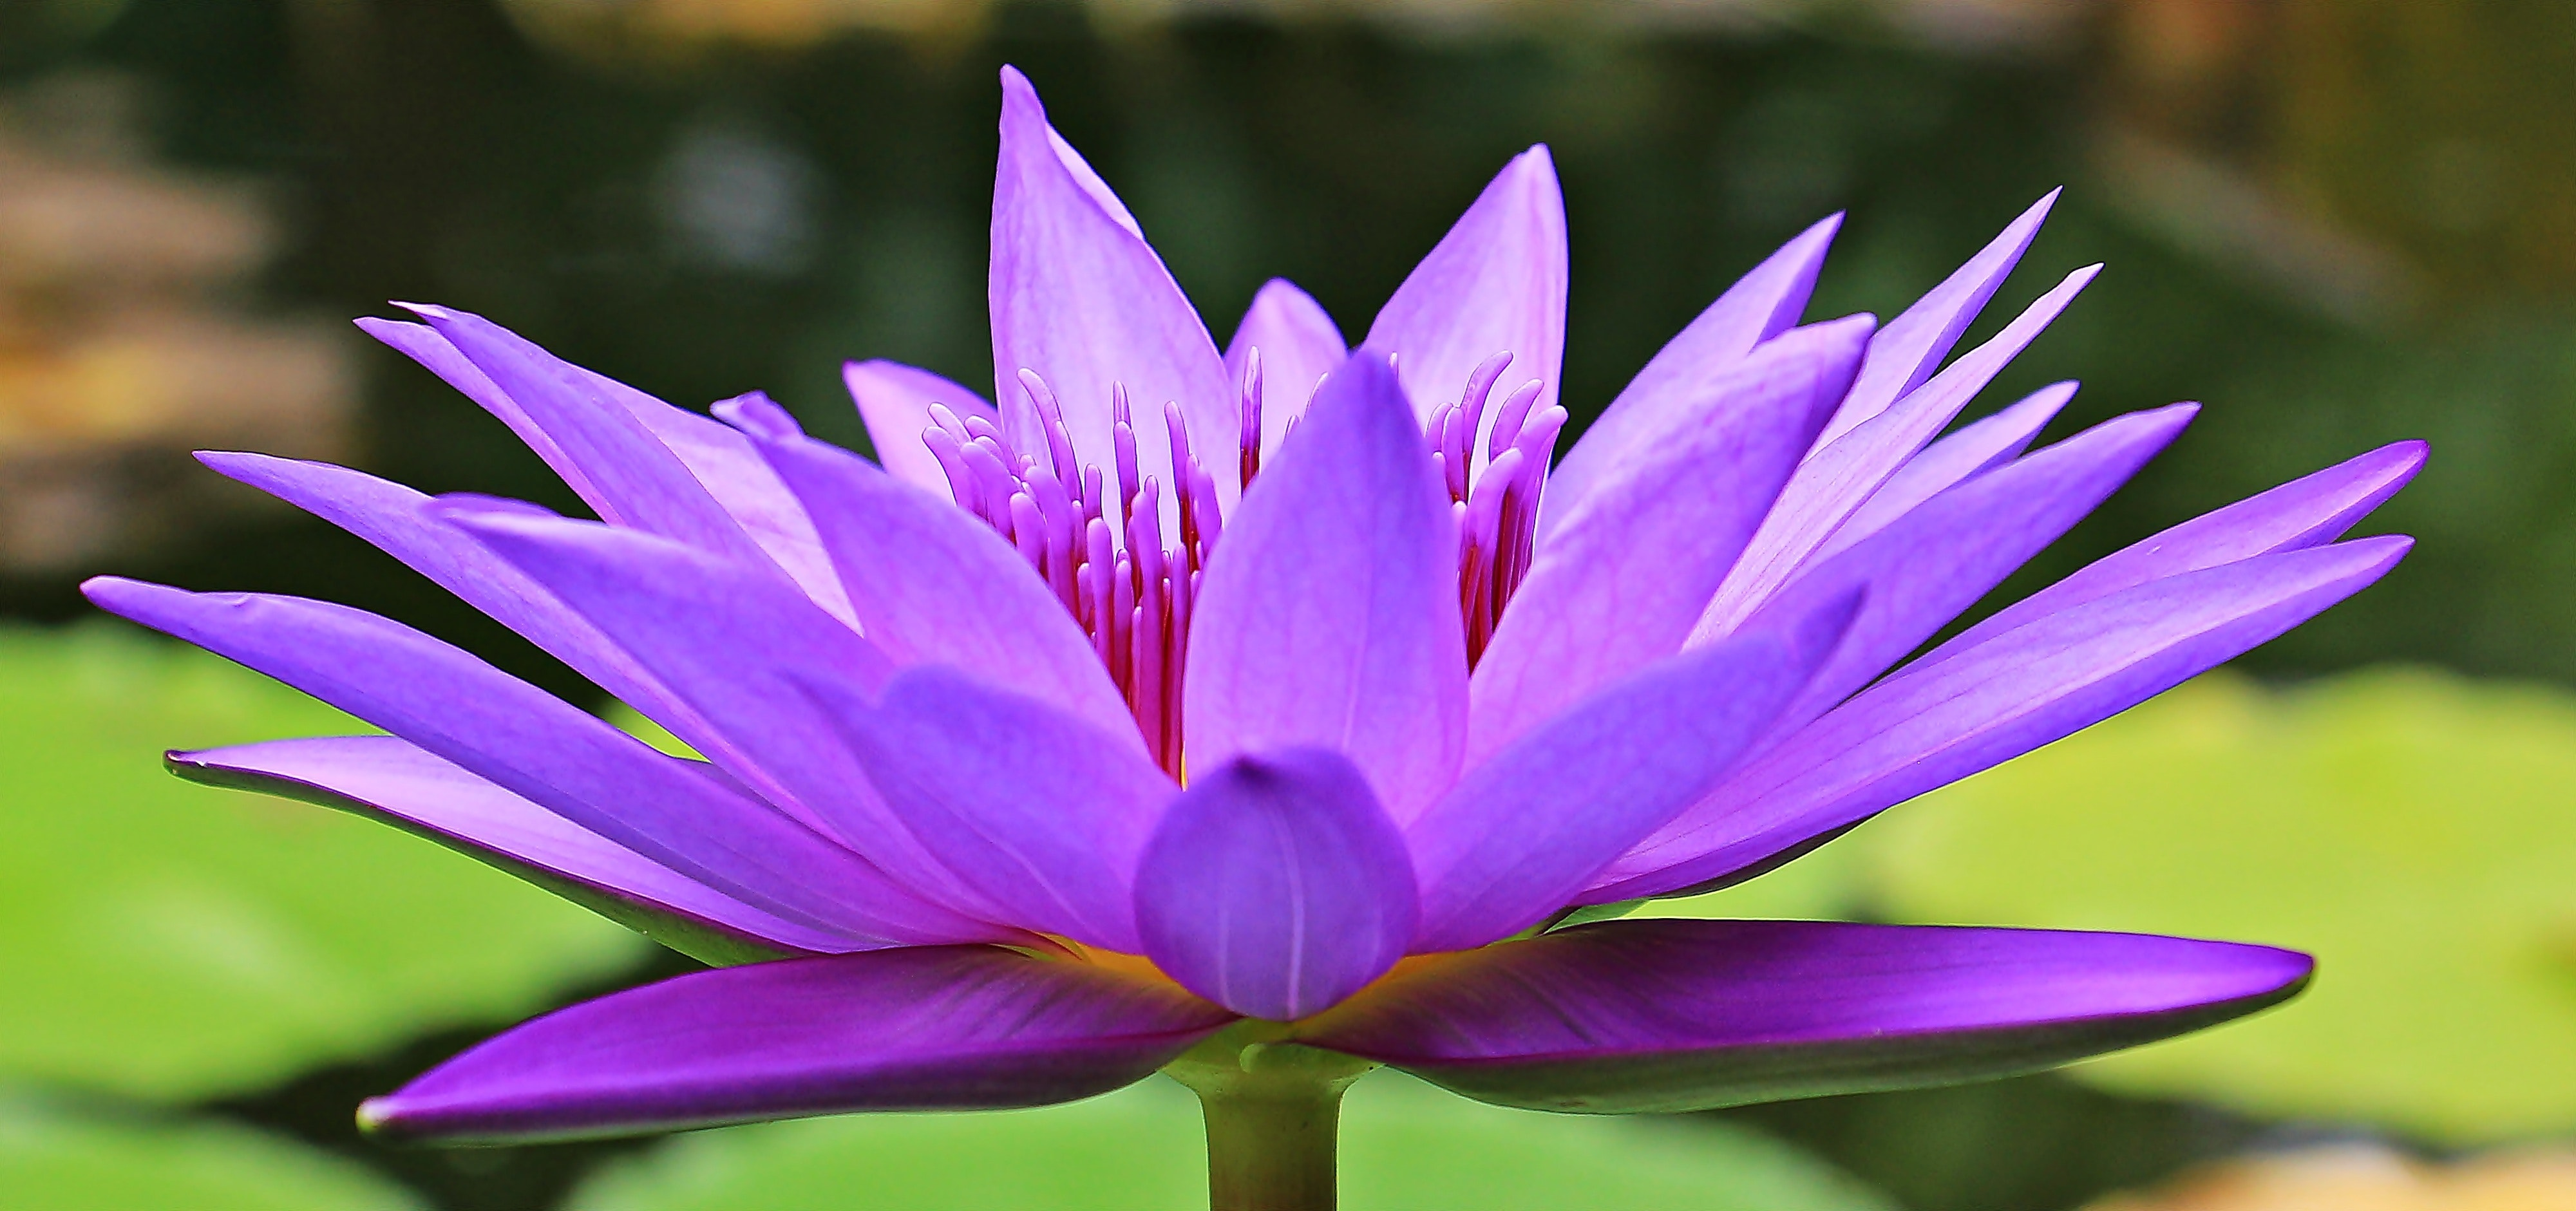 1000 Beautiful Lotus Flower Photos Pexels Free Stock Photos